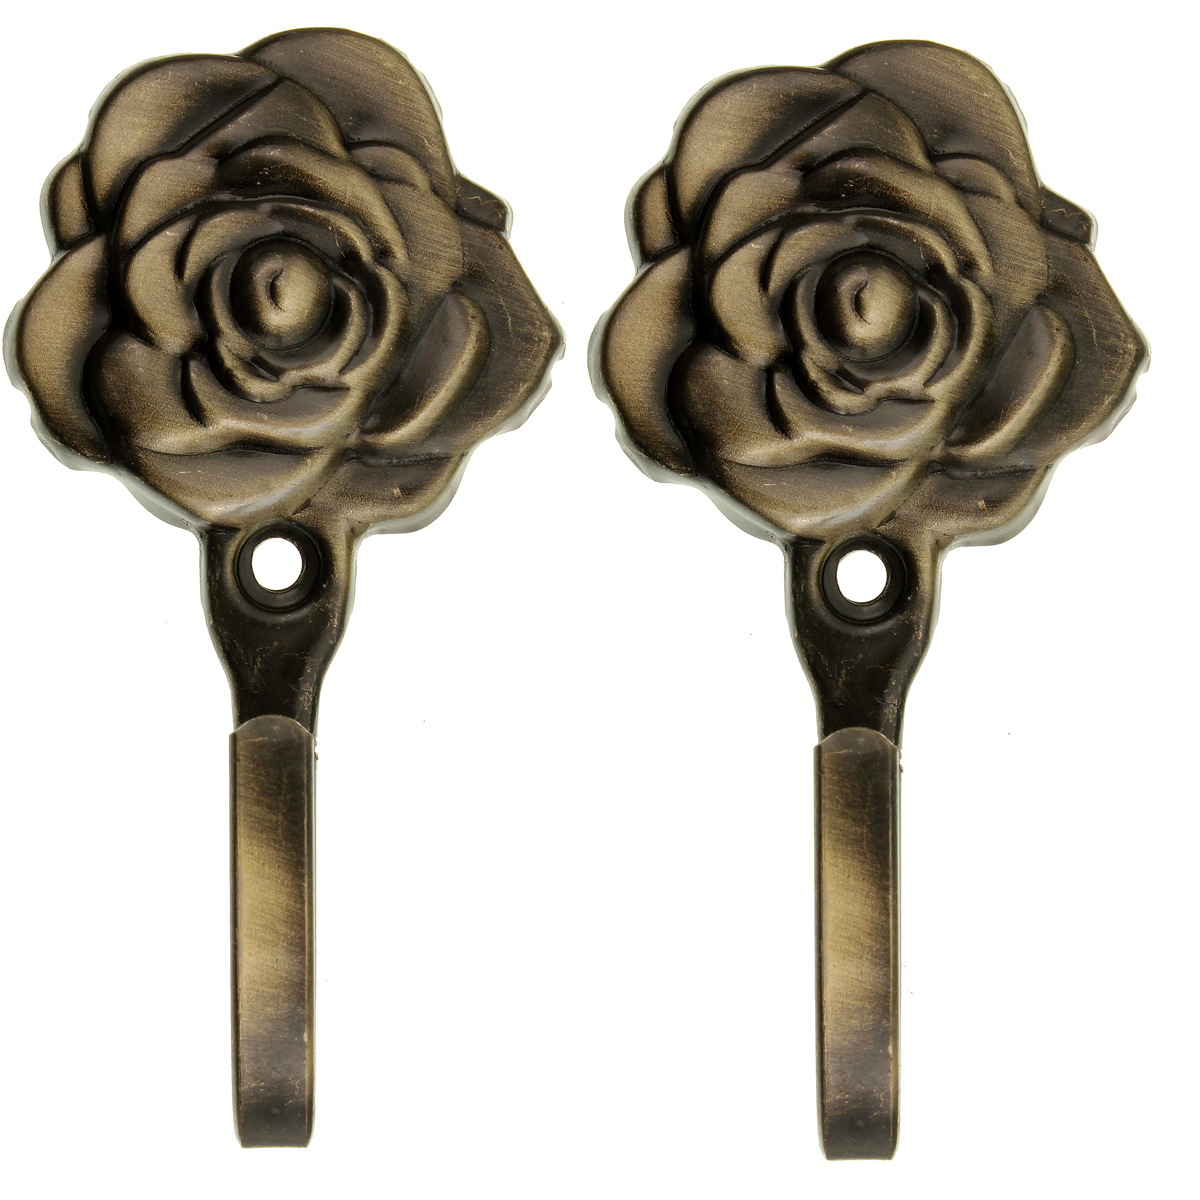 2x Metal Vintage Rose Flower Curtain Clothes Tie Back